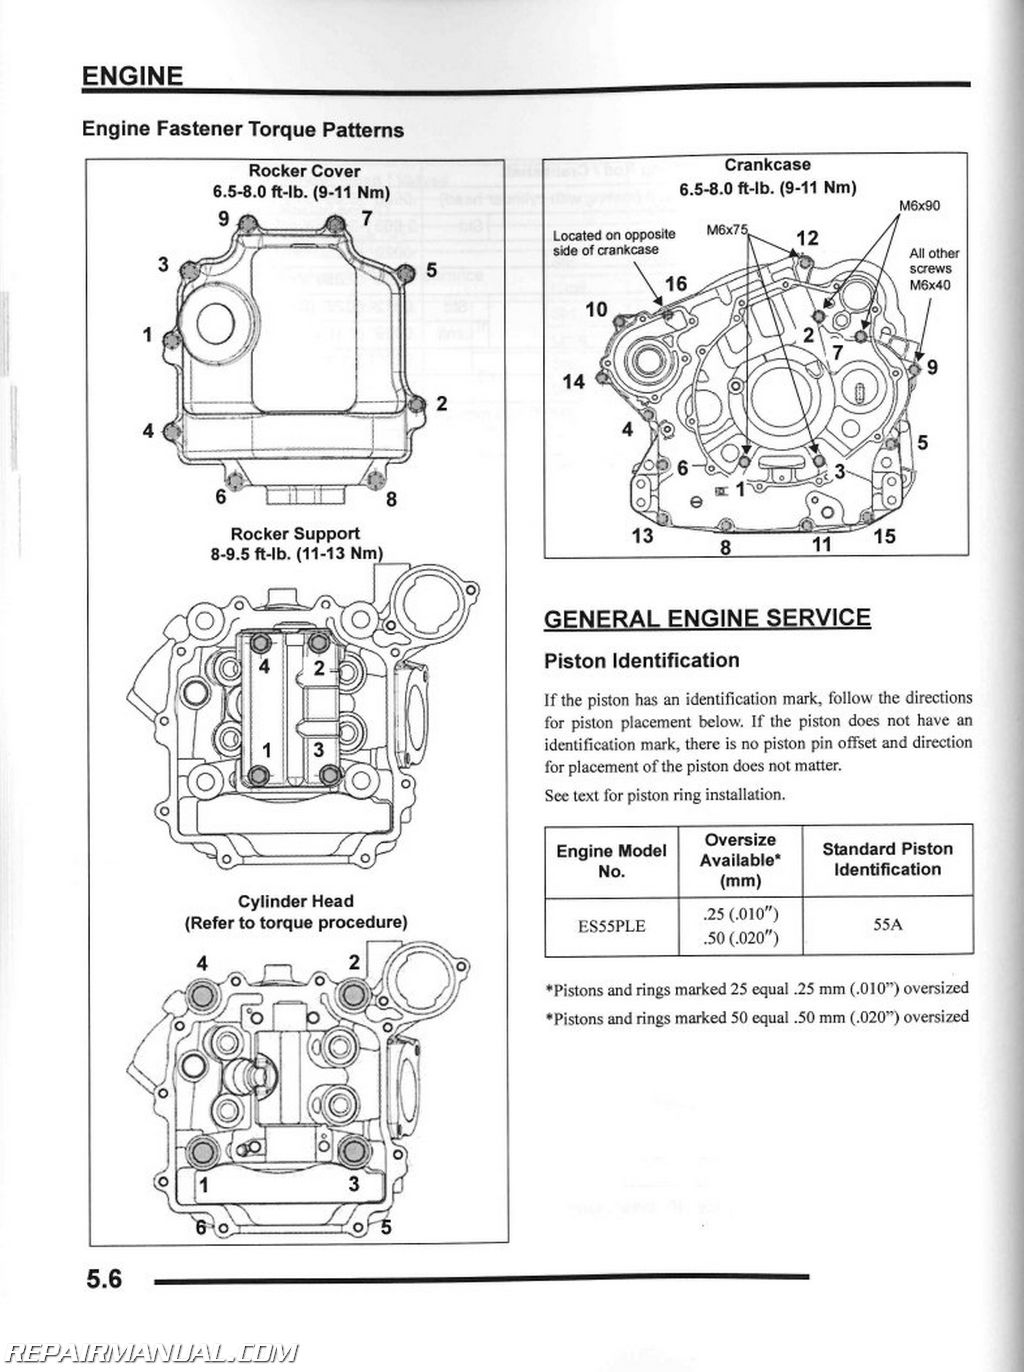 Polaris Snowmobile Wiring Diagram Free For You Wire 2010 Sportsman Xp 550 Atv Service Manual 120 Schematic